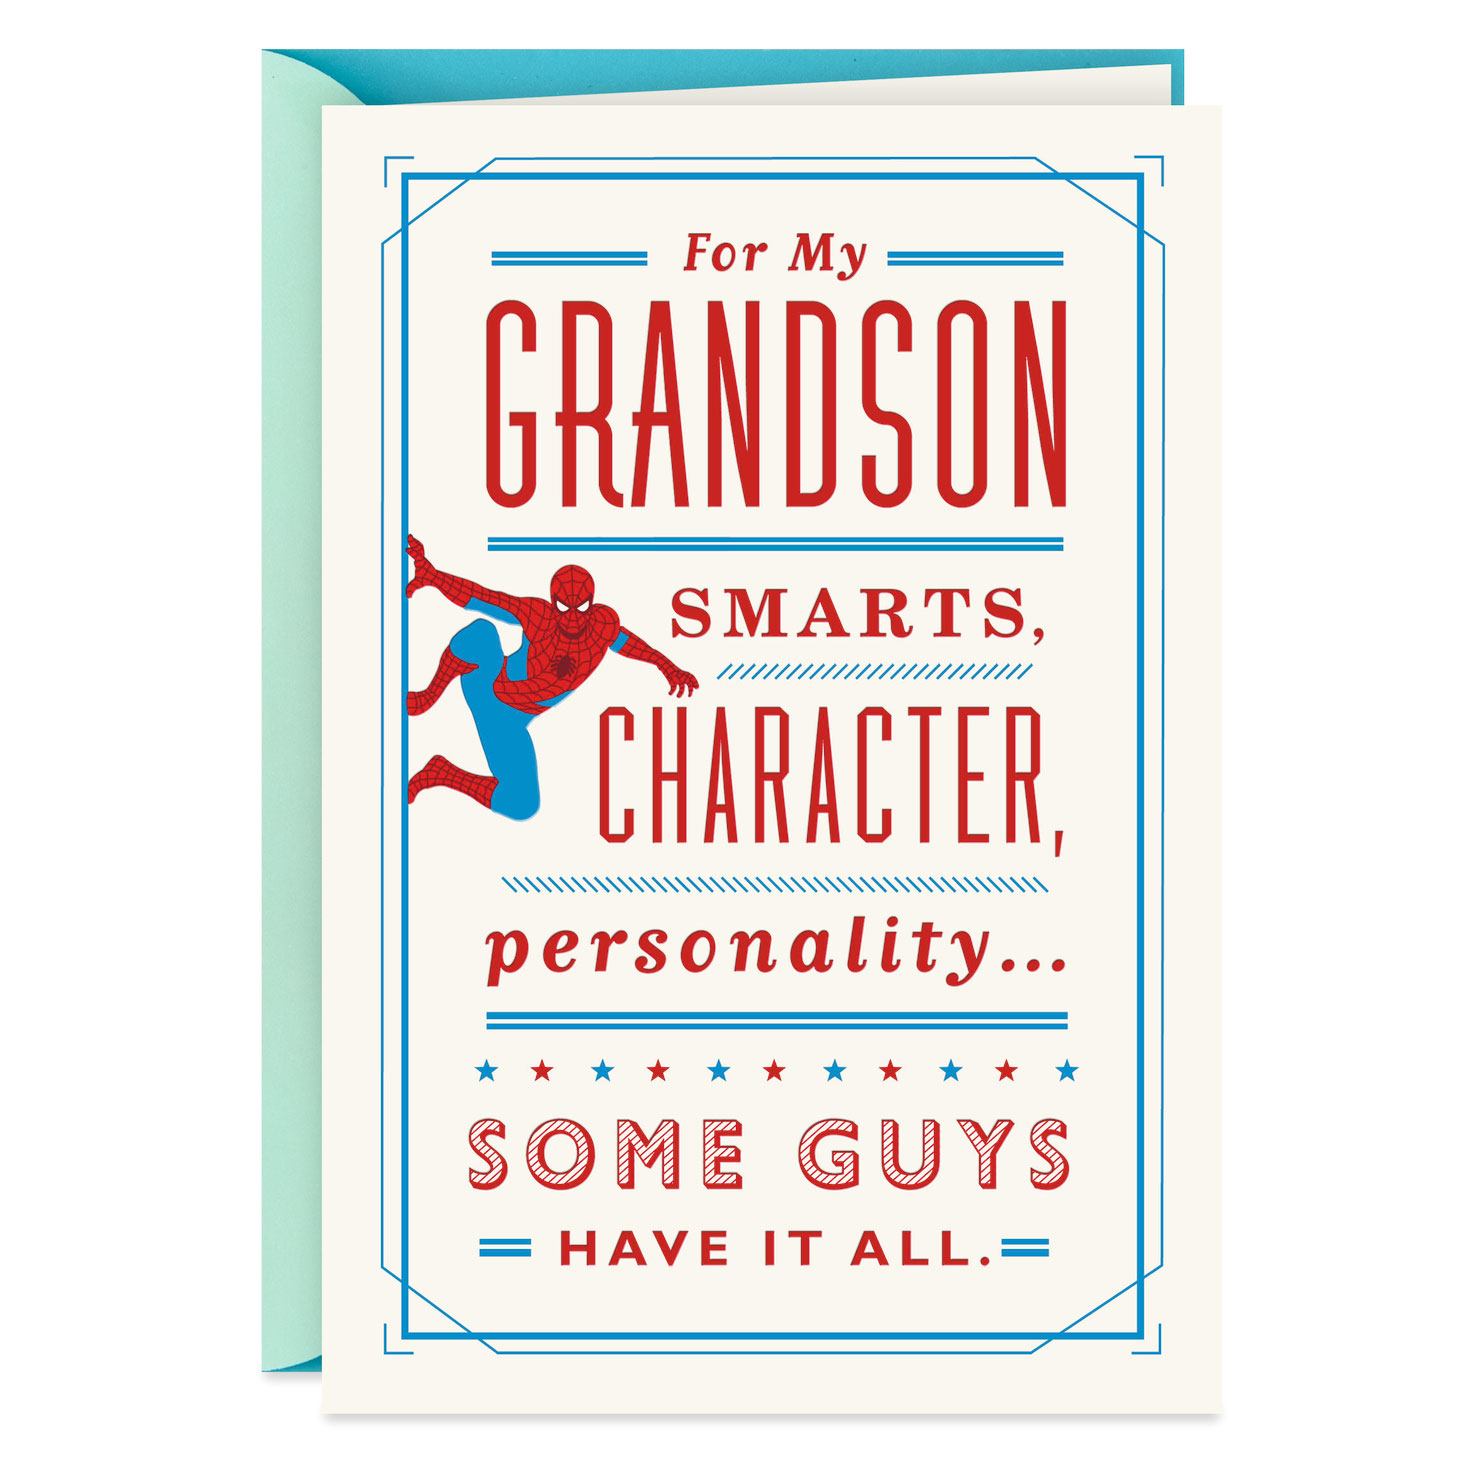 26 GRANDSON BIRTHDAY CARD HALLMARK for Young Men   CHOOSE FROM 13